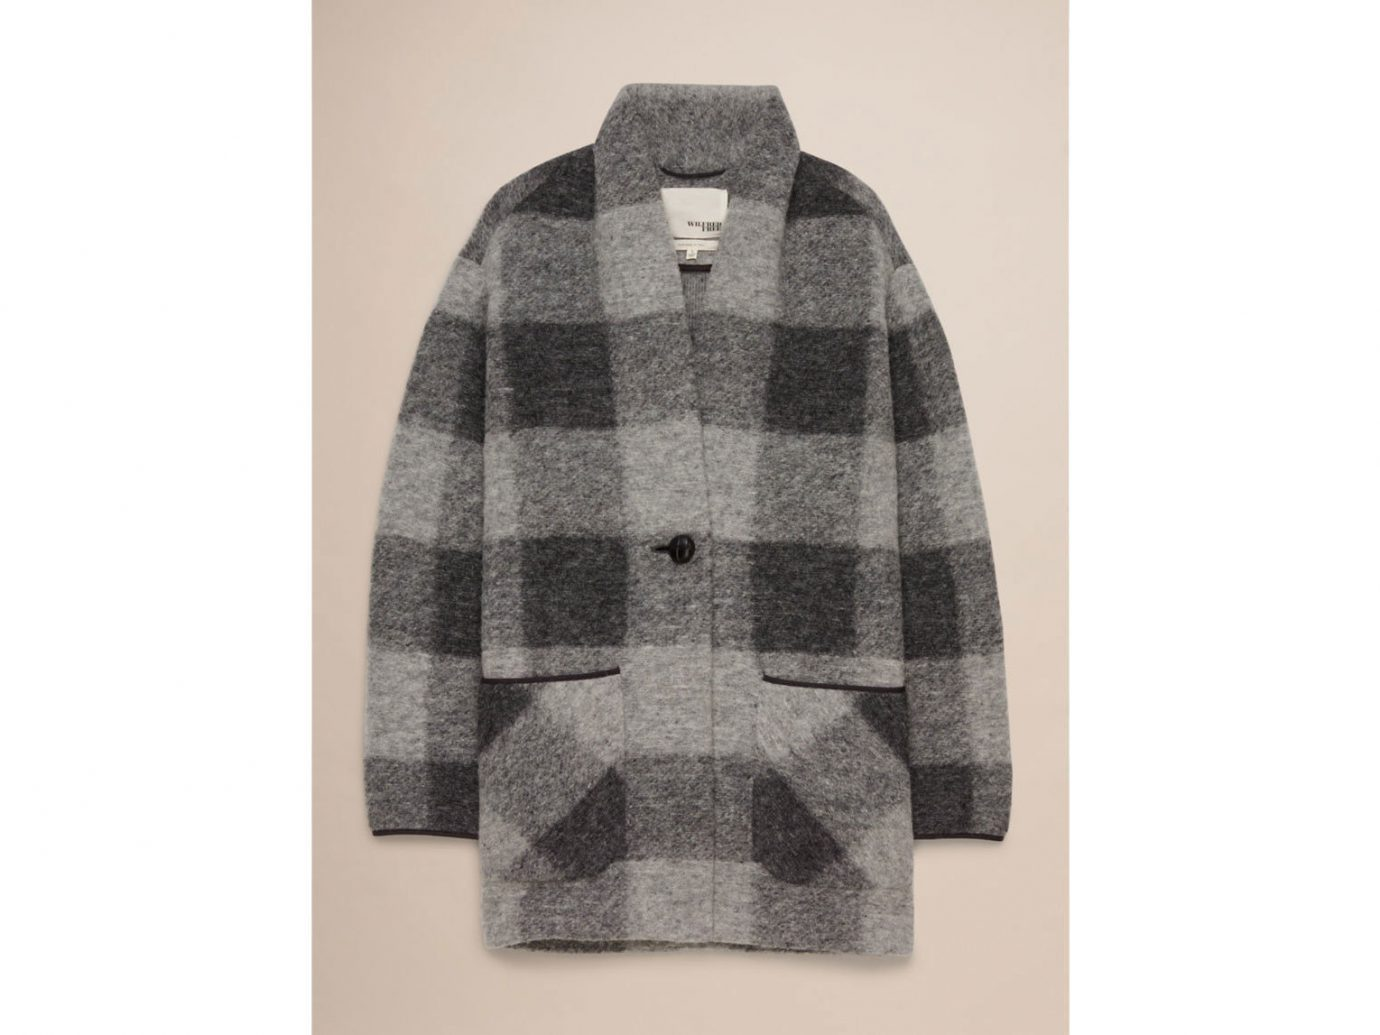 Style + Design clothing indoor outerwear wool sweater shirt pattern sleeve woolen cardigan Design textile jacket colored